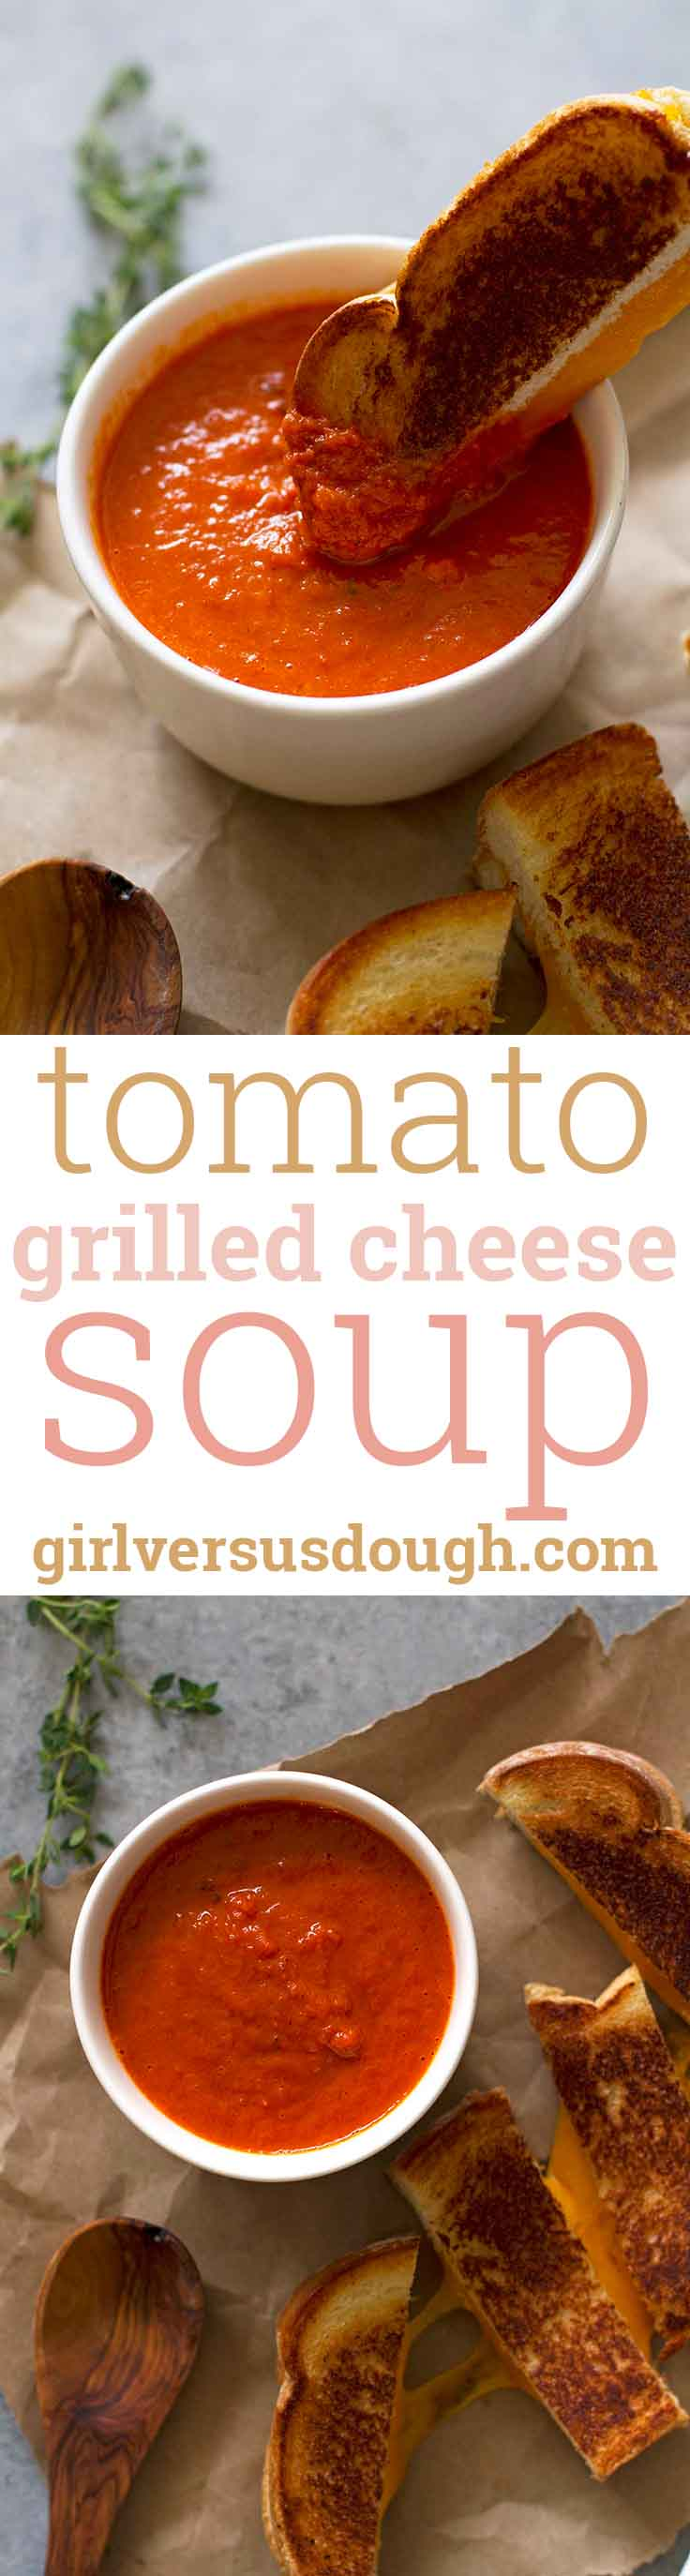 Tomato Grilled Cheese Soup -- the perfect simple and satisfying homemade tomato soup to pair with grilled cheese for the ultimate comfy-cozy meal. girlversusdough.com @girlversusdough